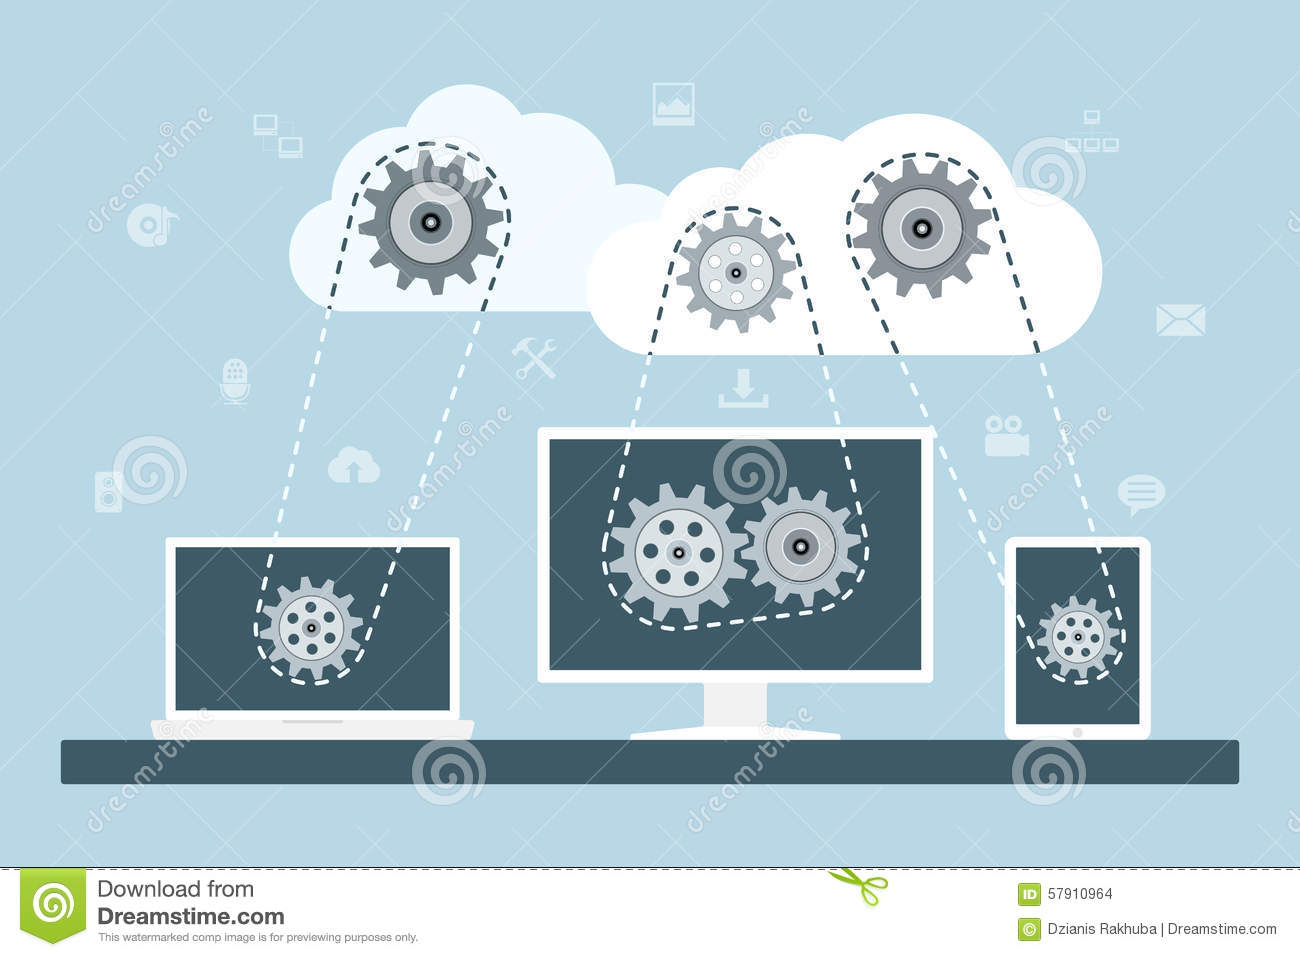 Security in Data Storage and Transmission in Cloud Computing